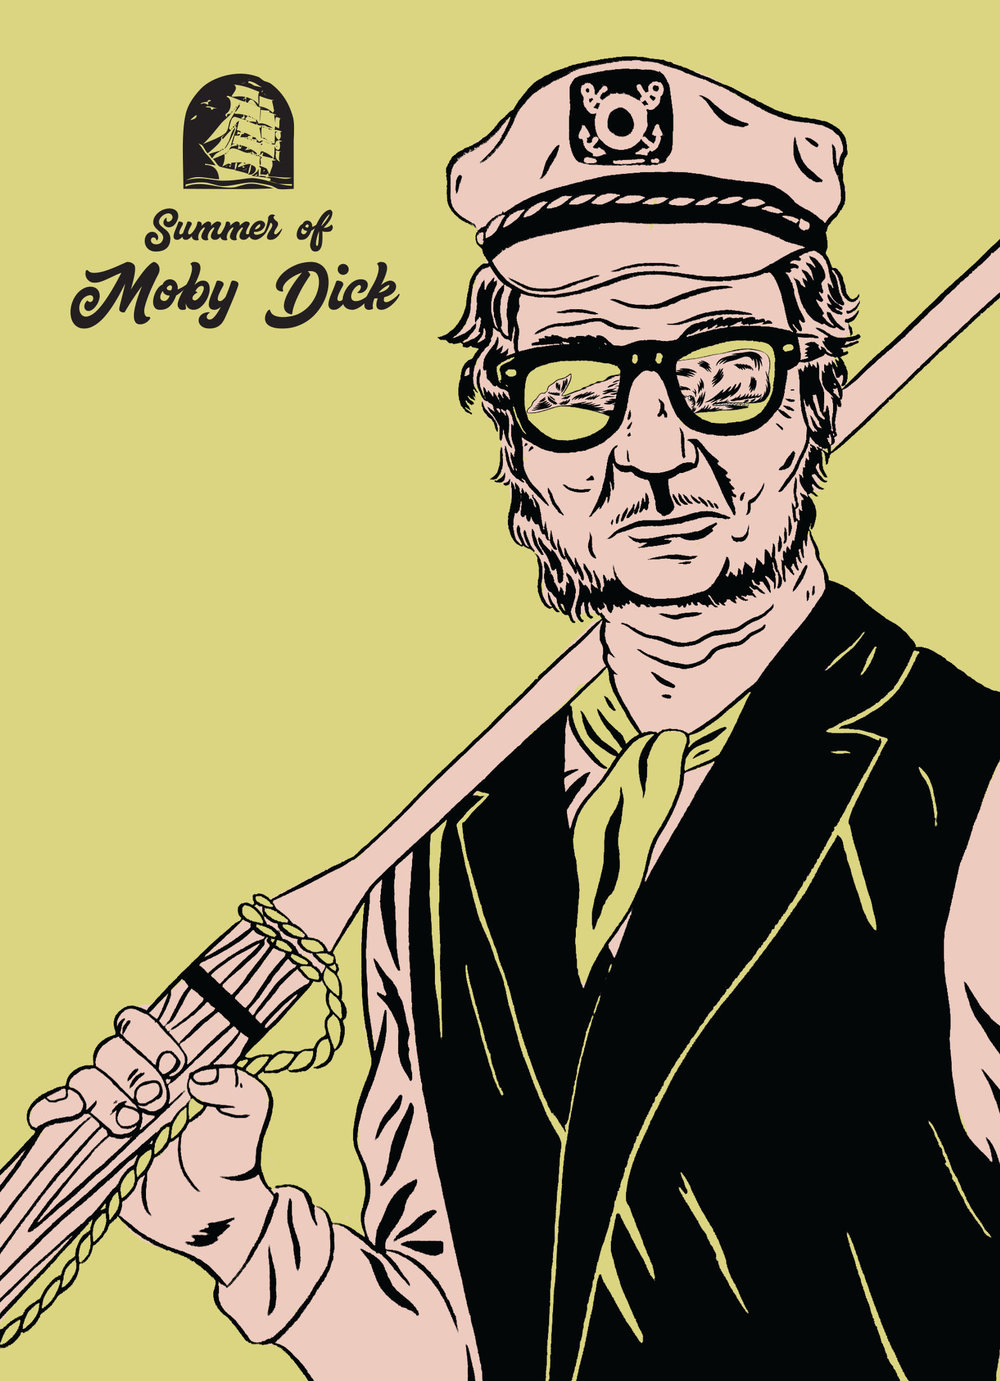 Summer of Moby Dick Postcard